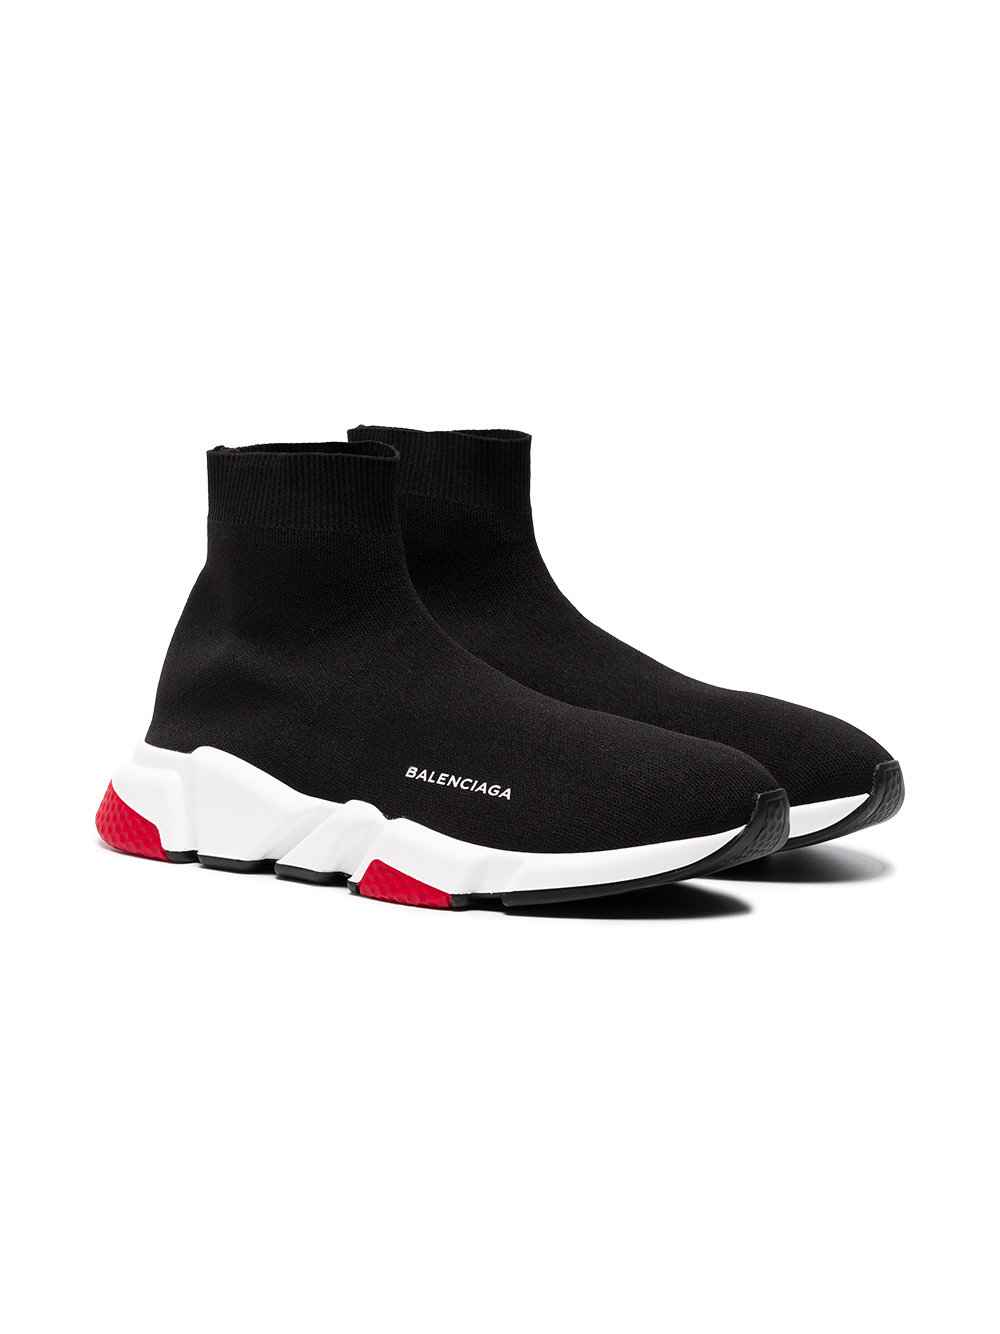 BALENCIAGA Black Speed Sock Sneakers